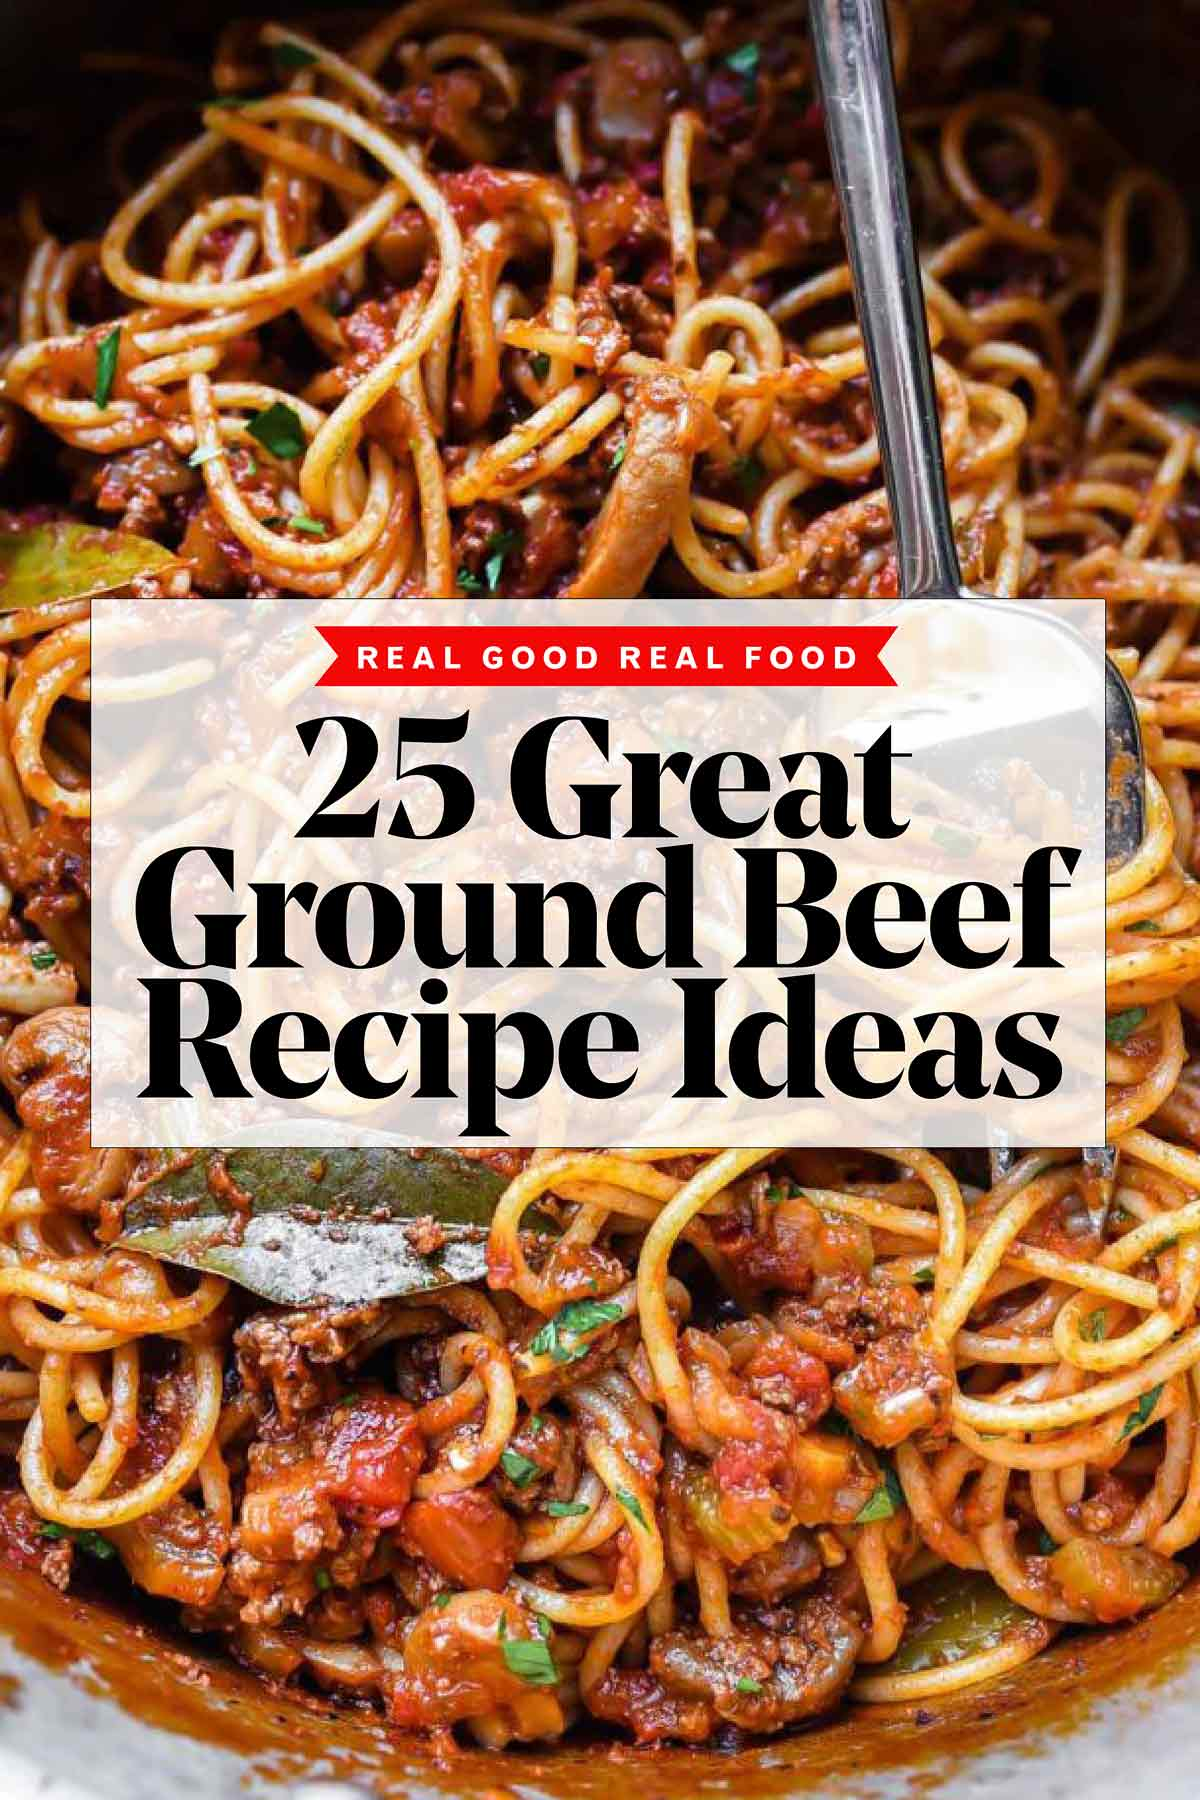 25 Ground Beef Recipes That Taste Great Foodiecrush Com